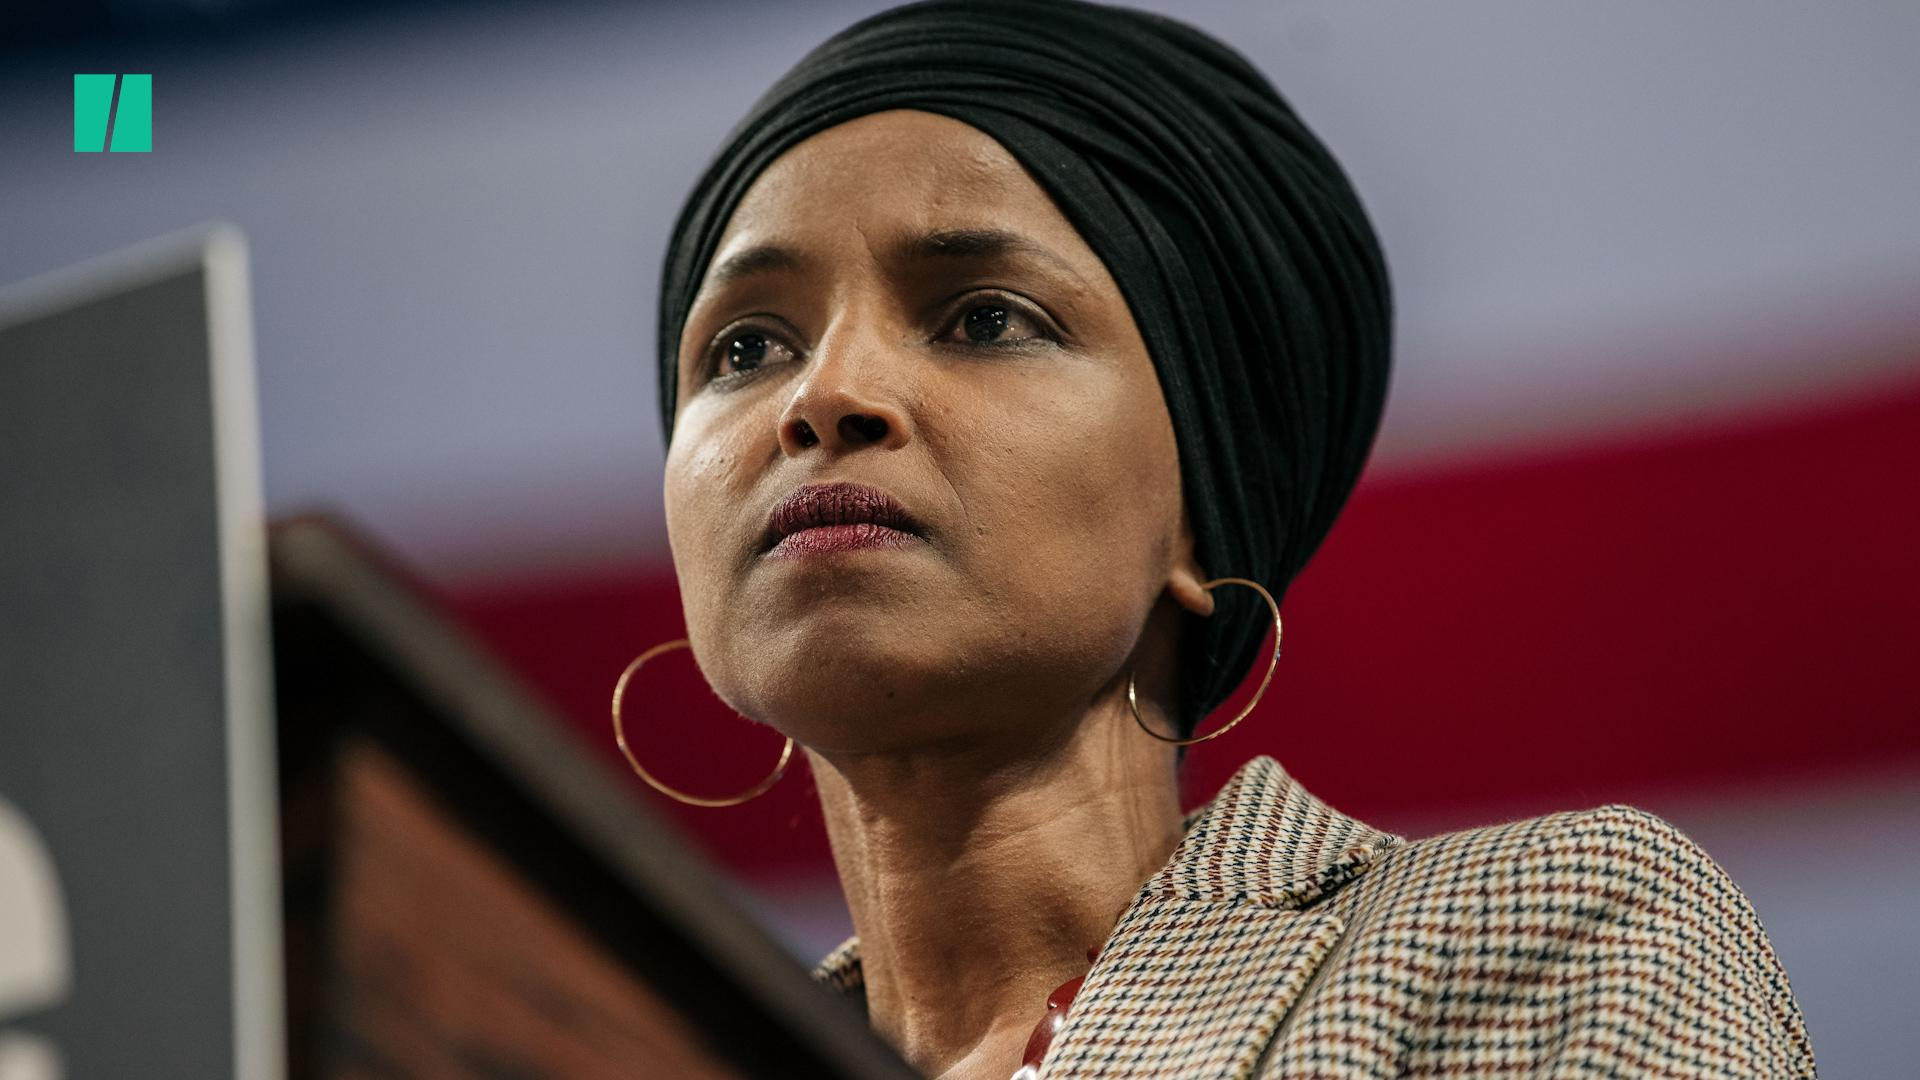 Ilhan Omar Asks Judge For 'Compassion' In Sentencing Man Who Threatened Her Life